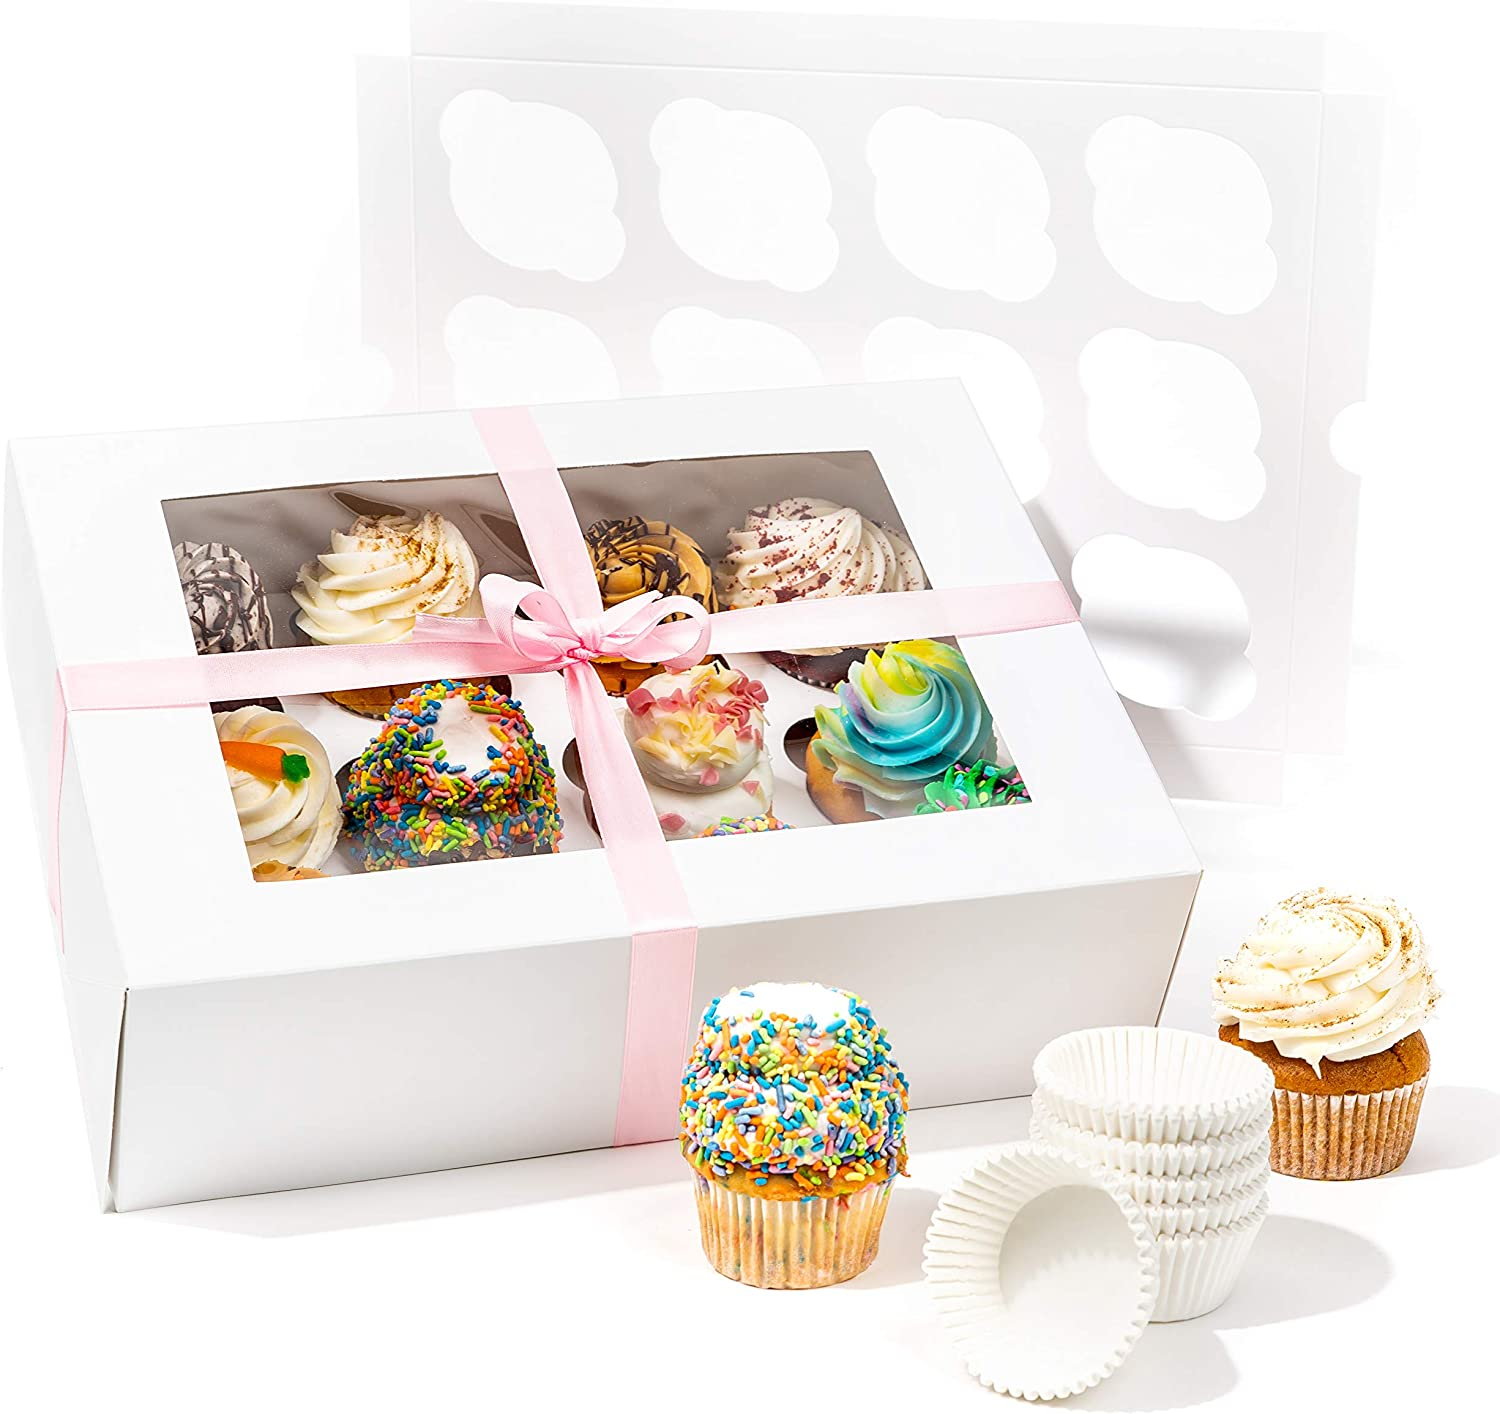 SMIRLY White Cupcake Boxes 12 Count: Disposable Cupcake Containers 12 Count, Cupcake Holder with Lid, Cupcake Carrier, Bakery Boxes with Window, Pastry Boxes Cookie Boxes with Window Large Treat Boxes